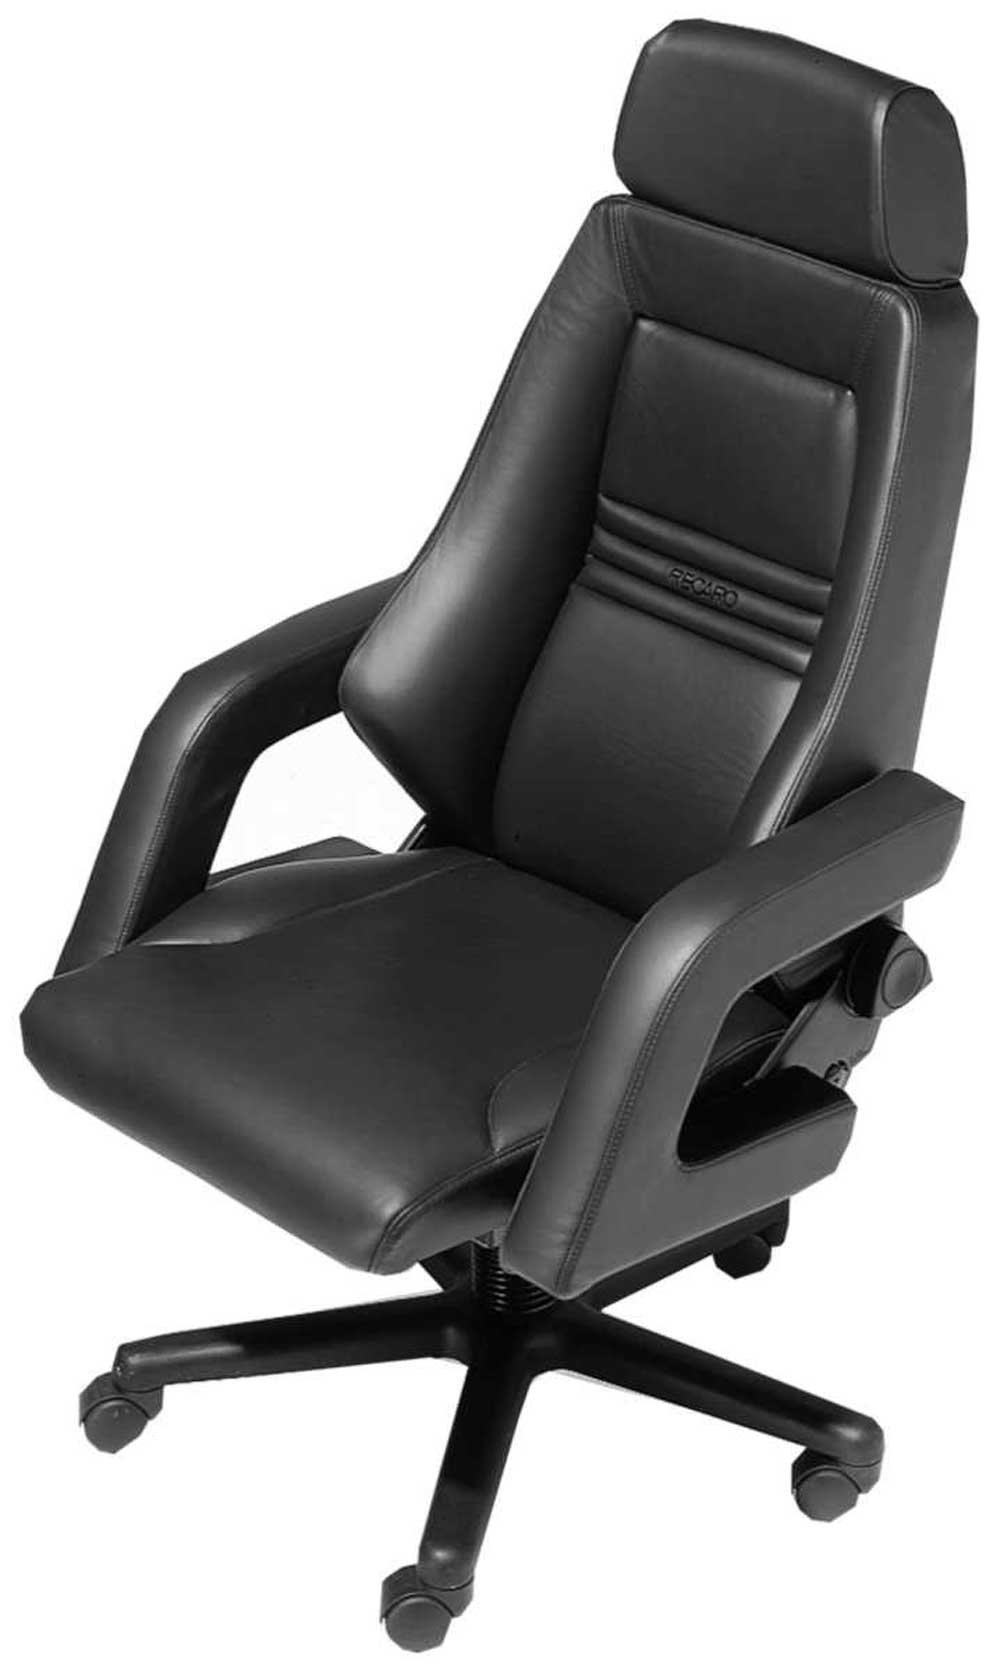 Making Savings When Purchasing Office Chairs | Office Furniture